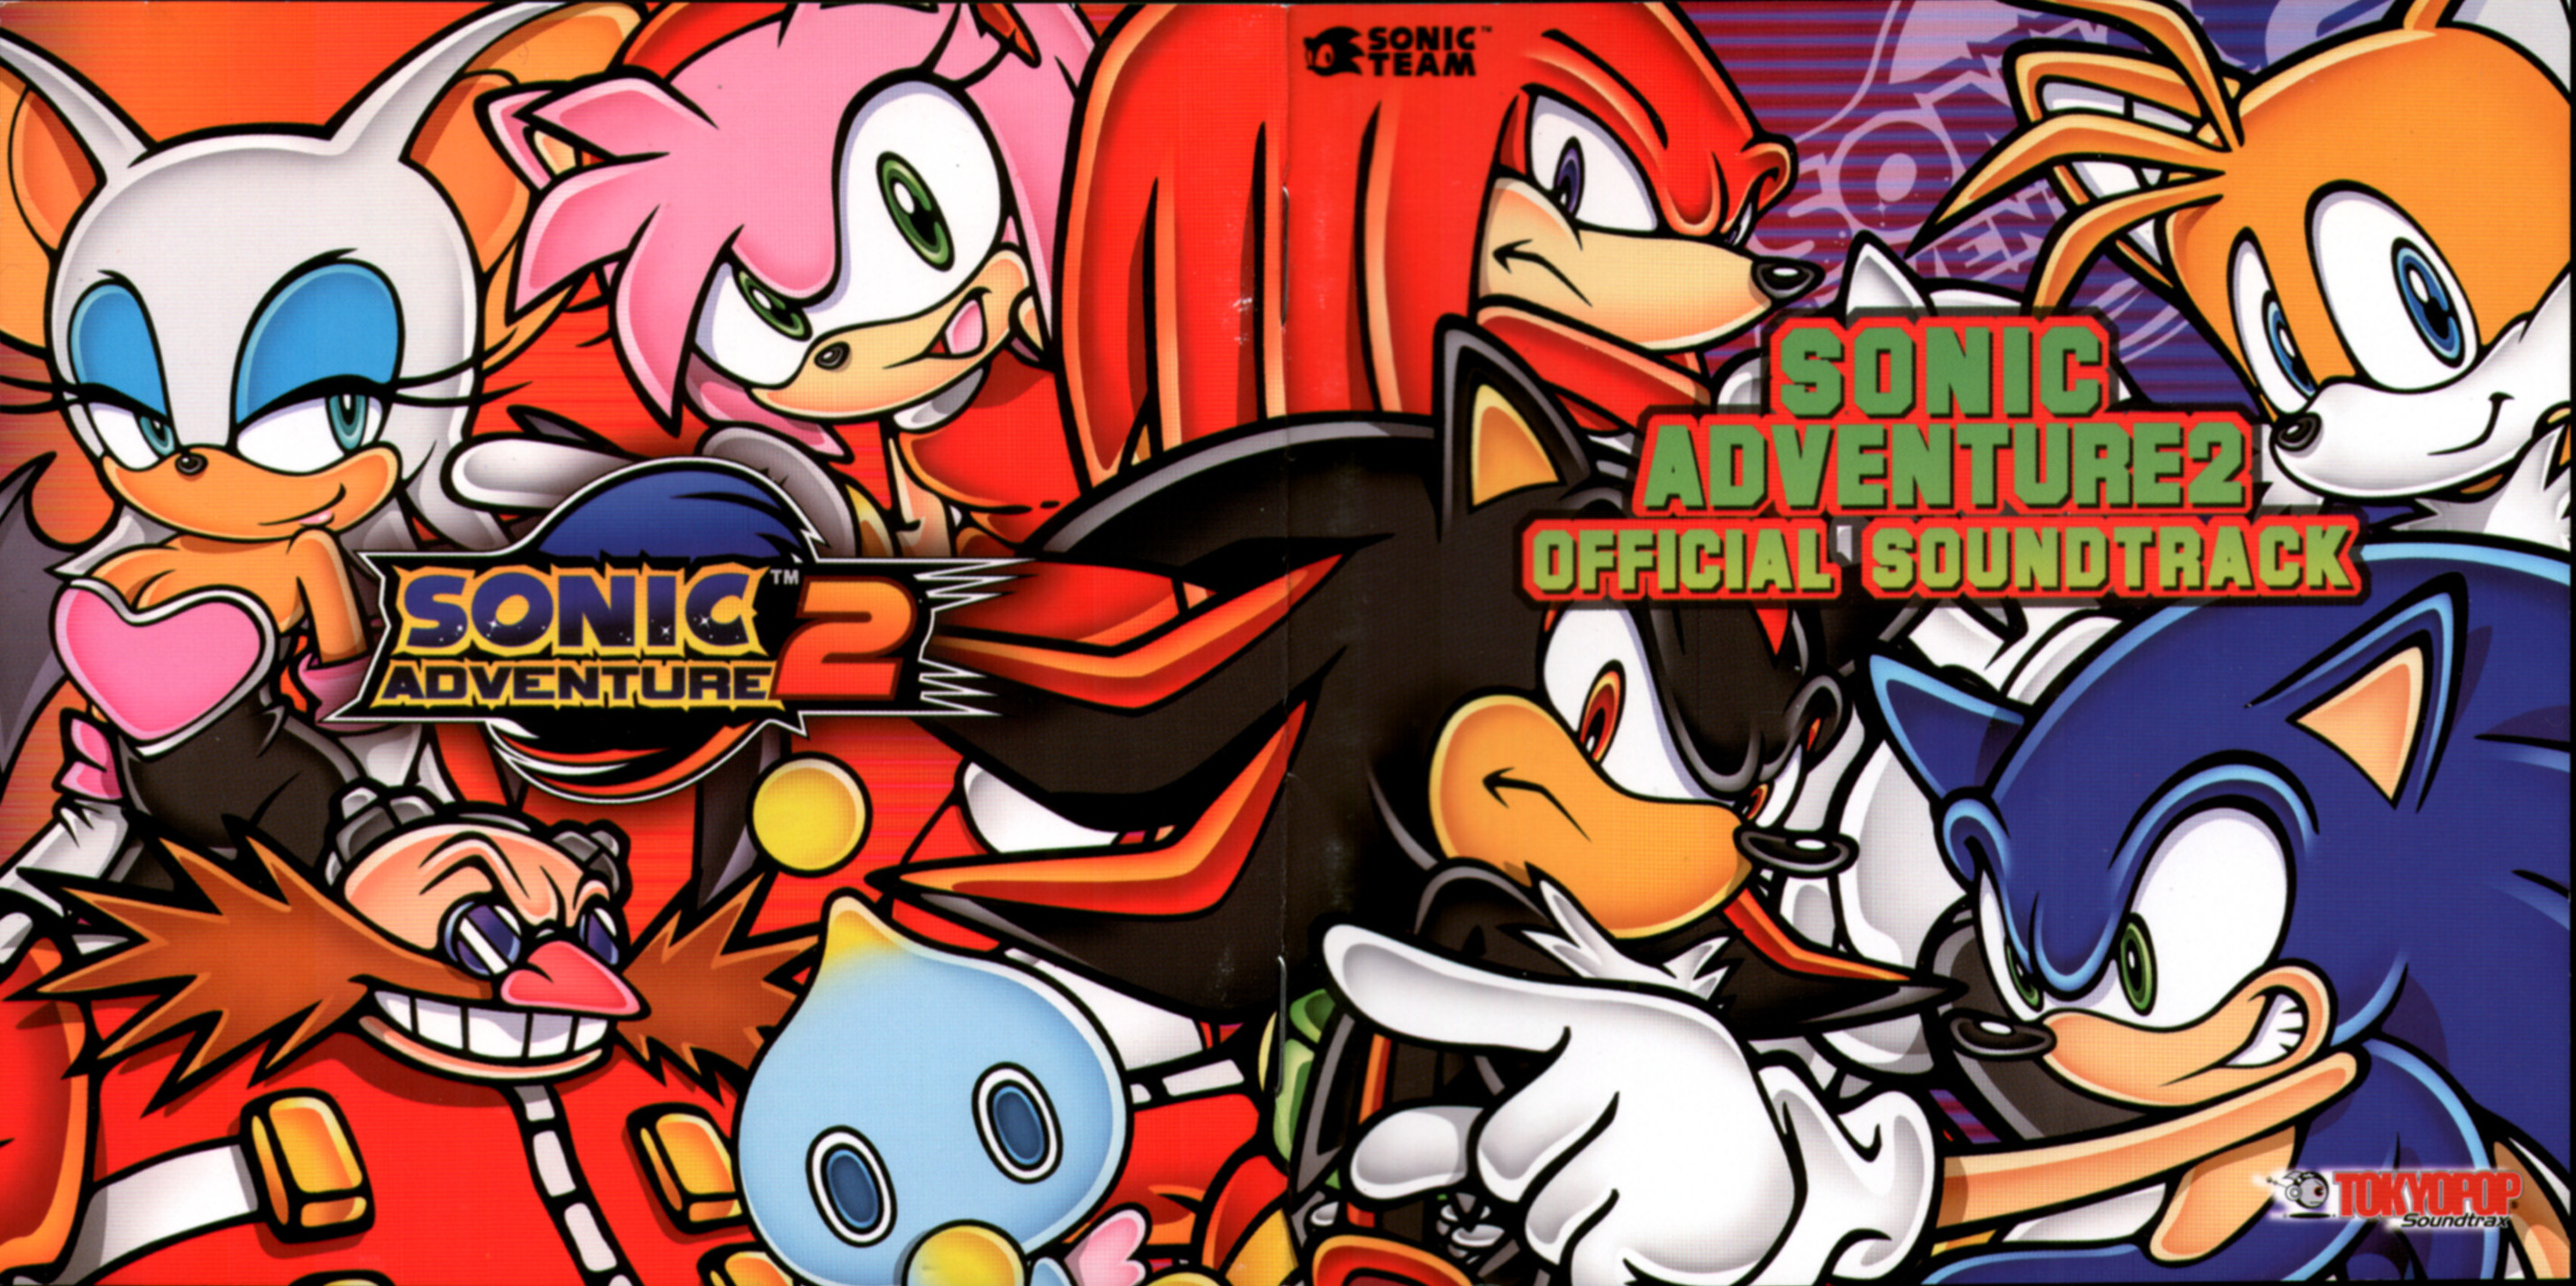 9a51f5250e309 Tokyopop Officially Announces US Release of Sonic Adventure 2 OST ...